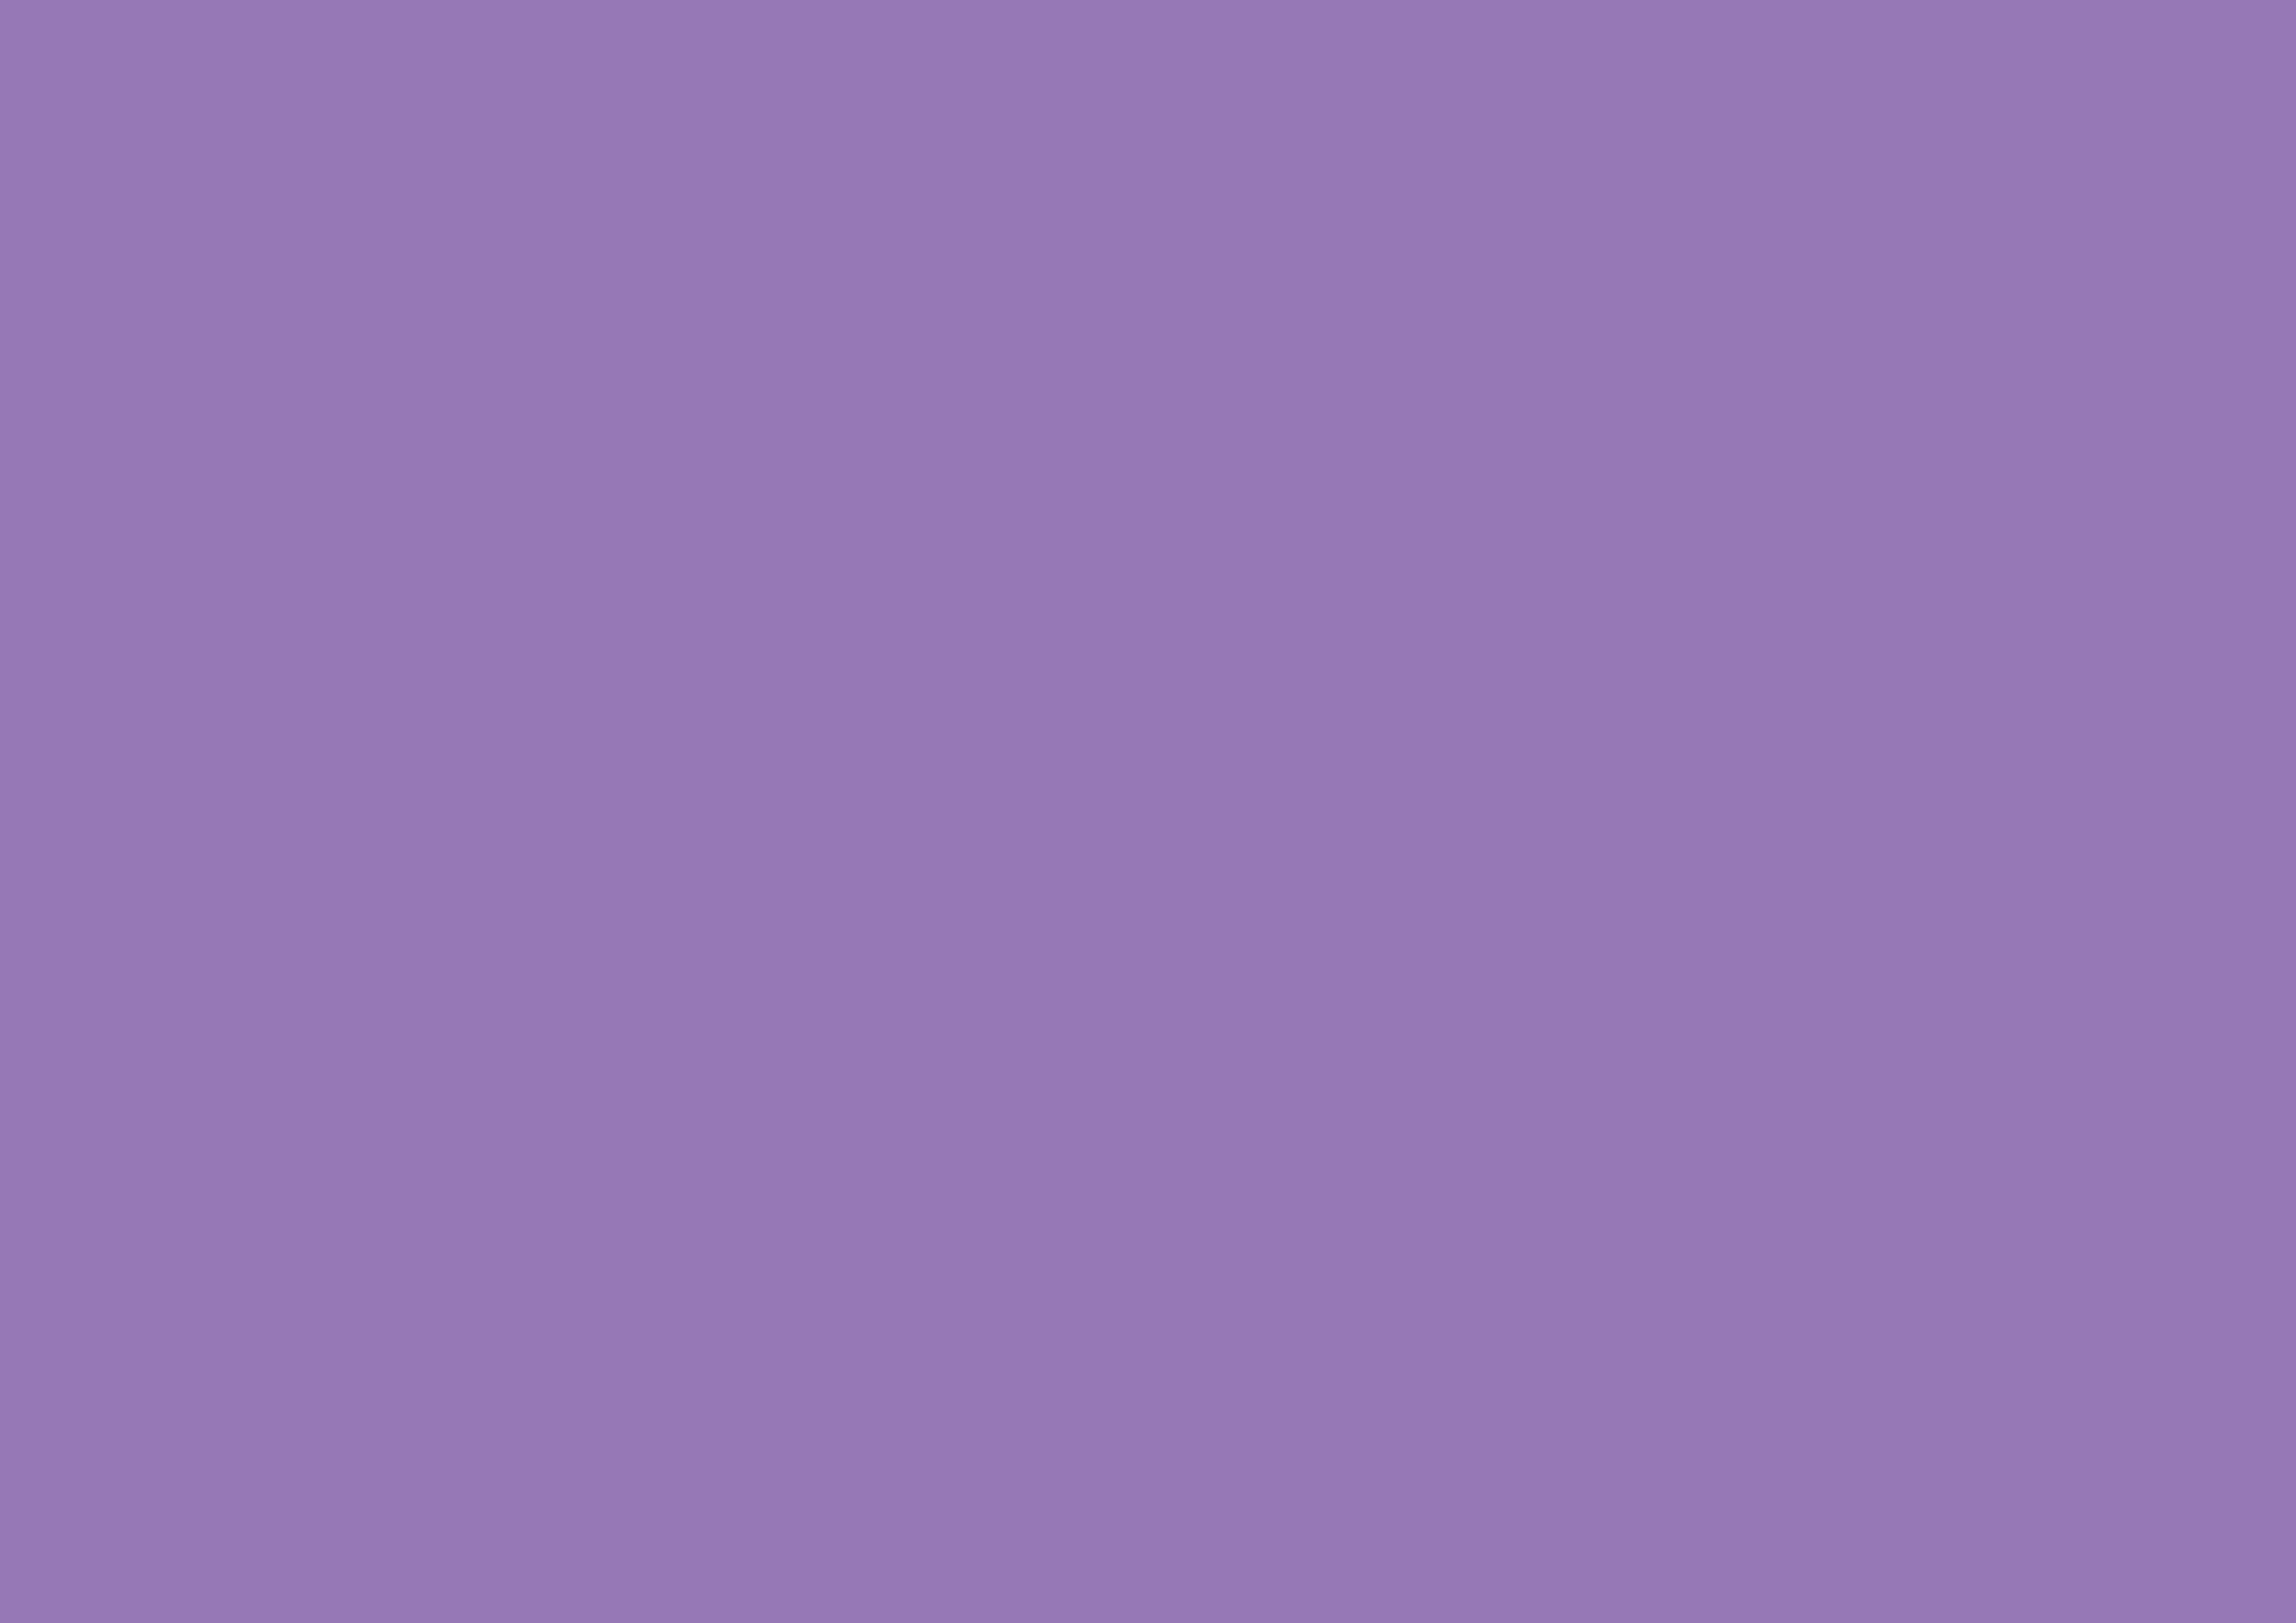 3508x2480 Purple Mountain Majesty Solid Color Background